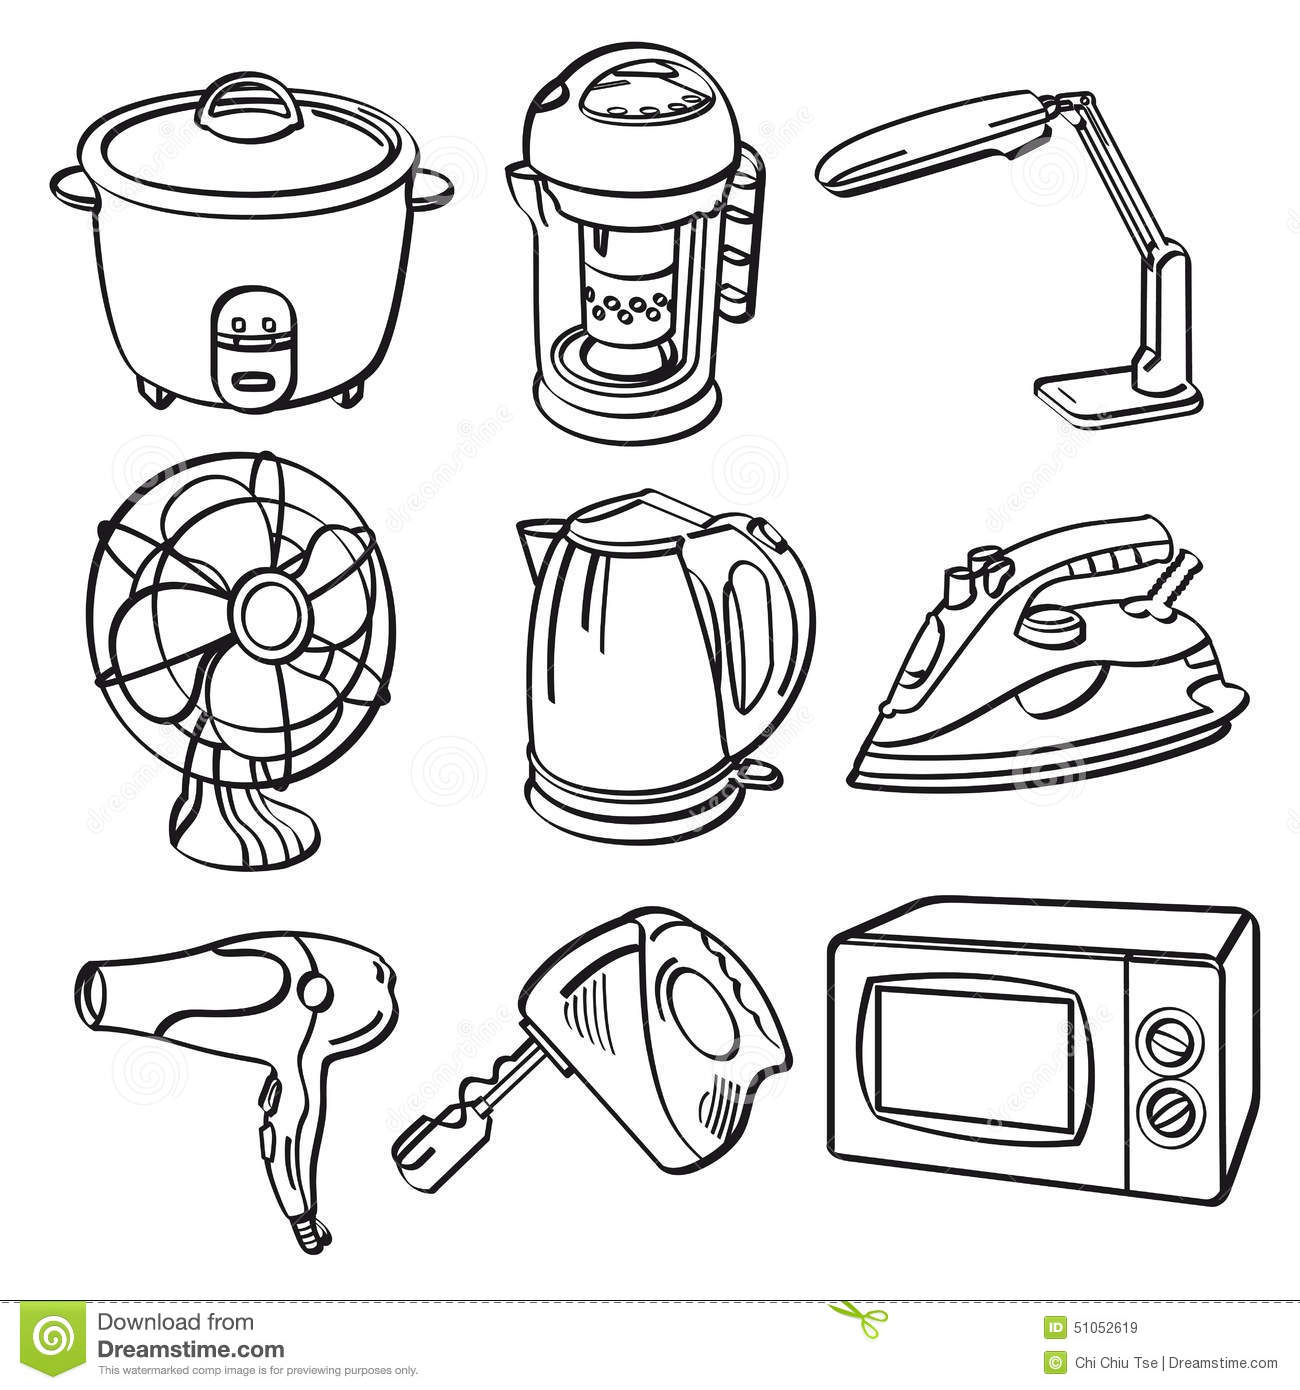 Home Electric Appliances stock illustration. Illustration